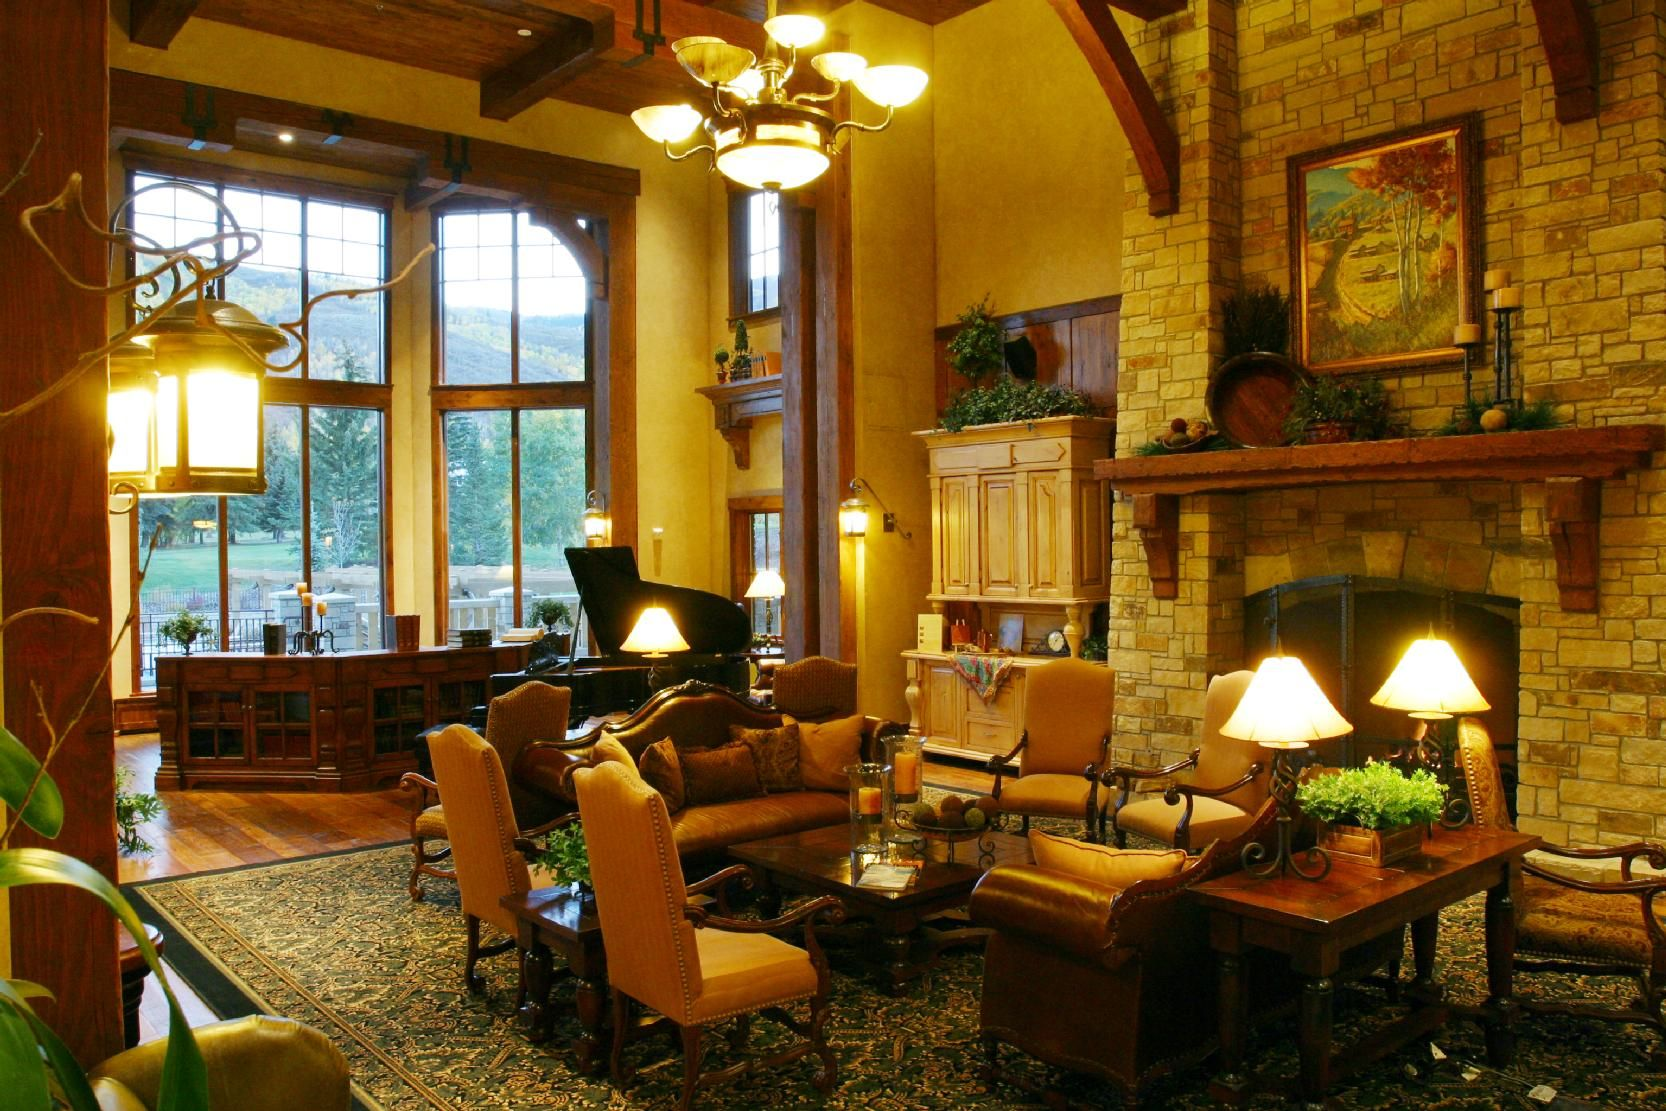 As One Of The Leading Luxury Park City Resort Hotels Our Affordable Accommodations Are Some Finest Hotel Deals Utah Has To Offer